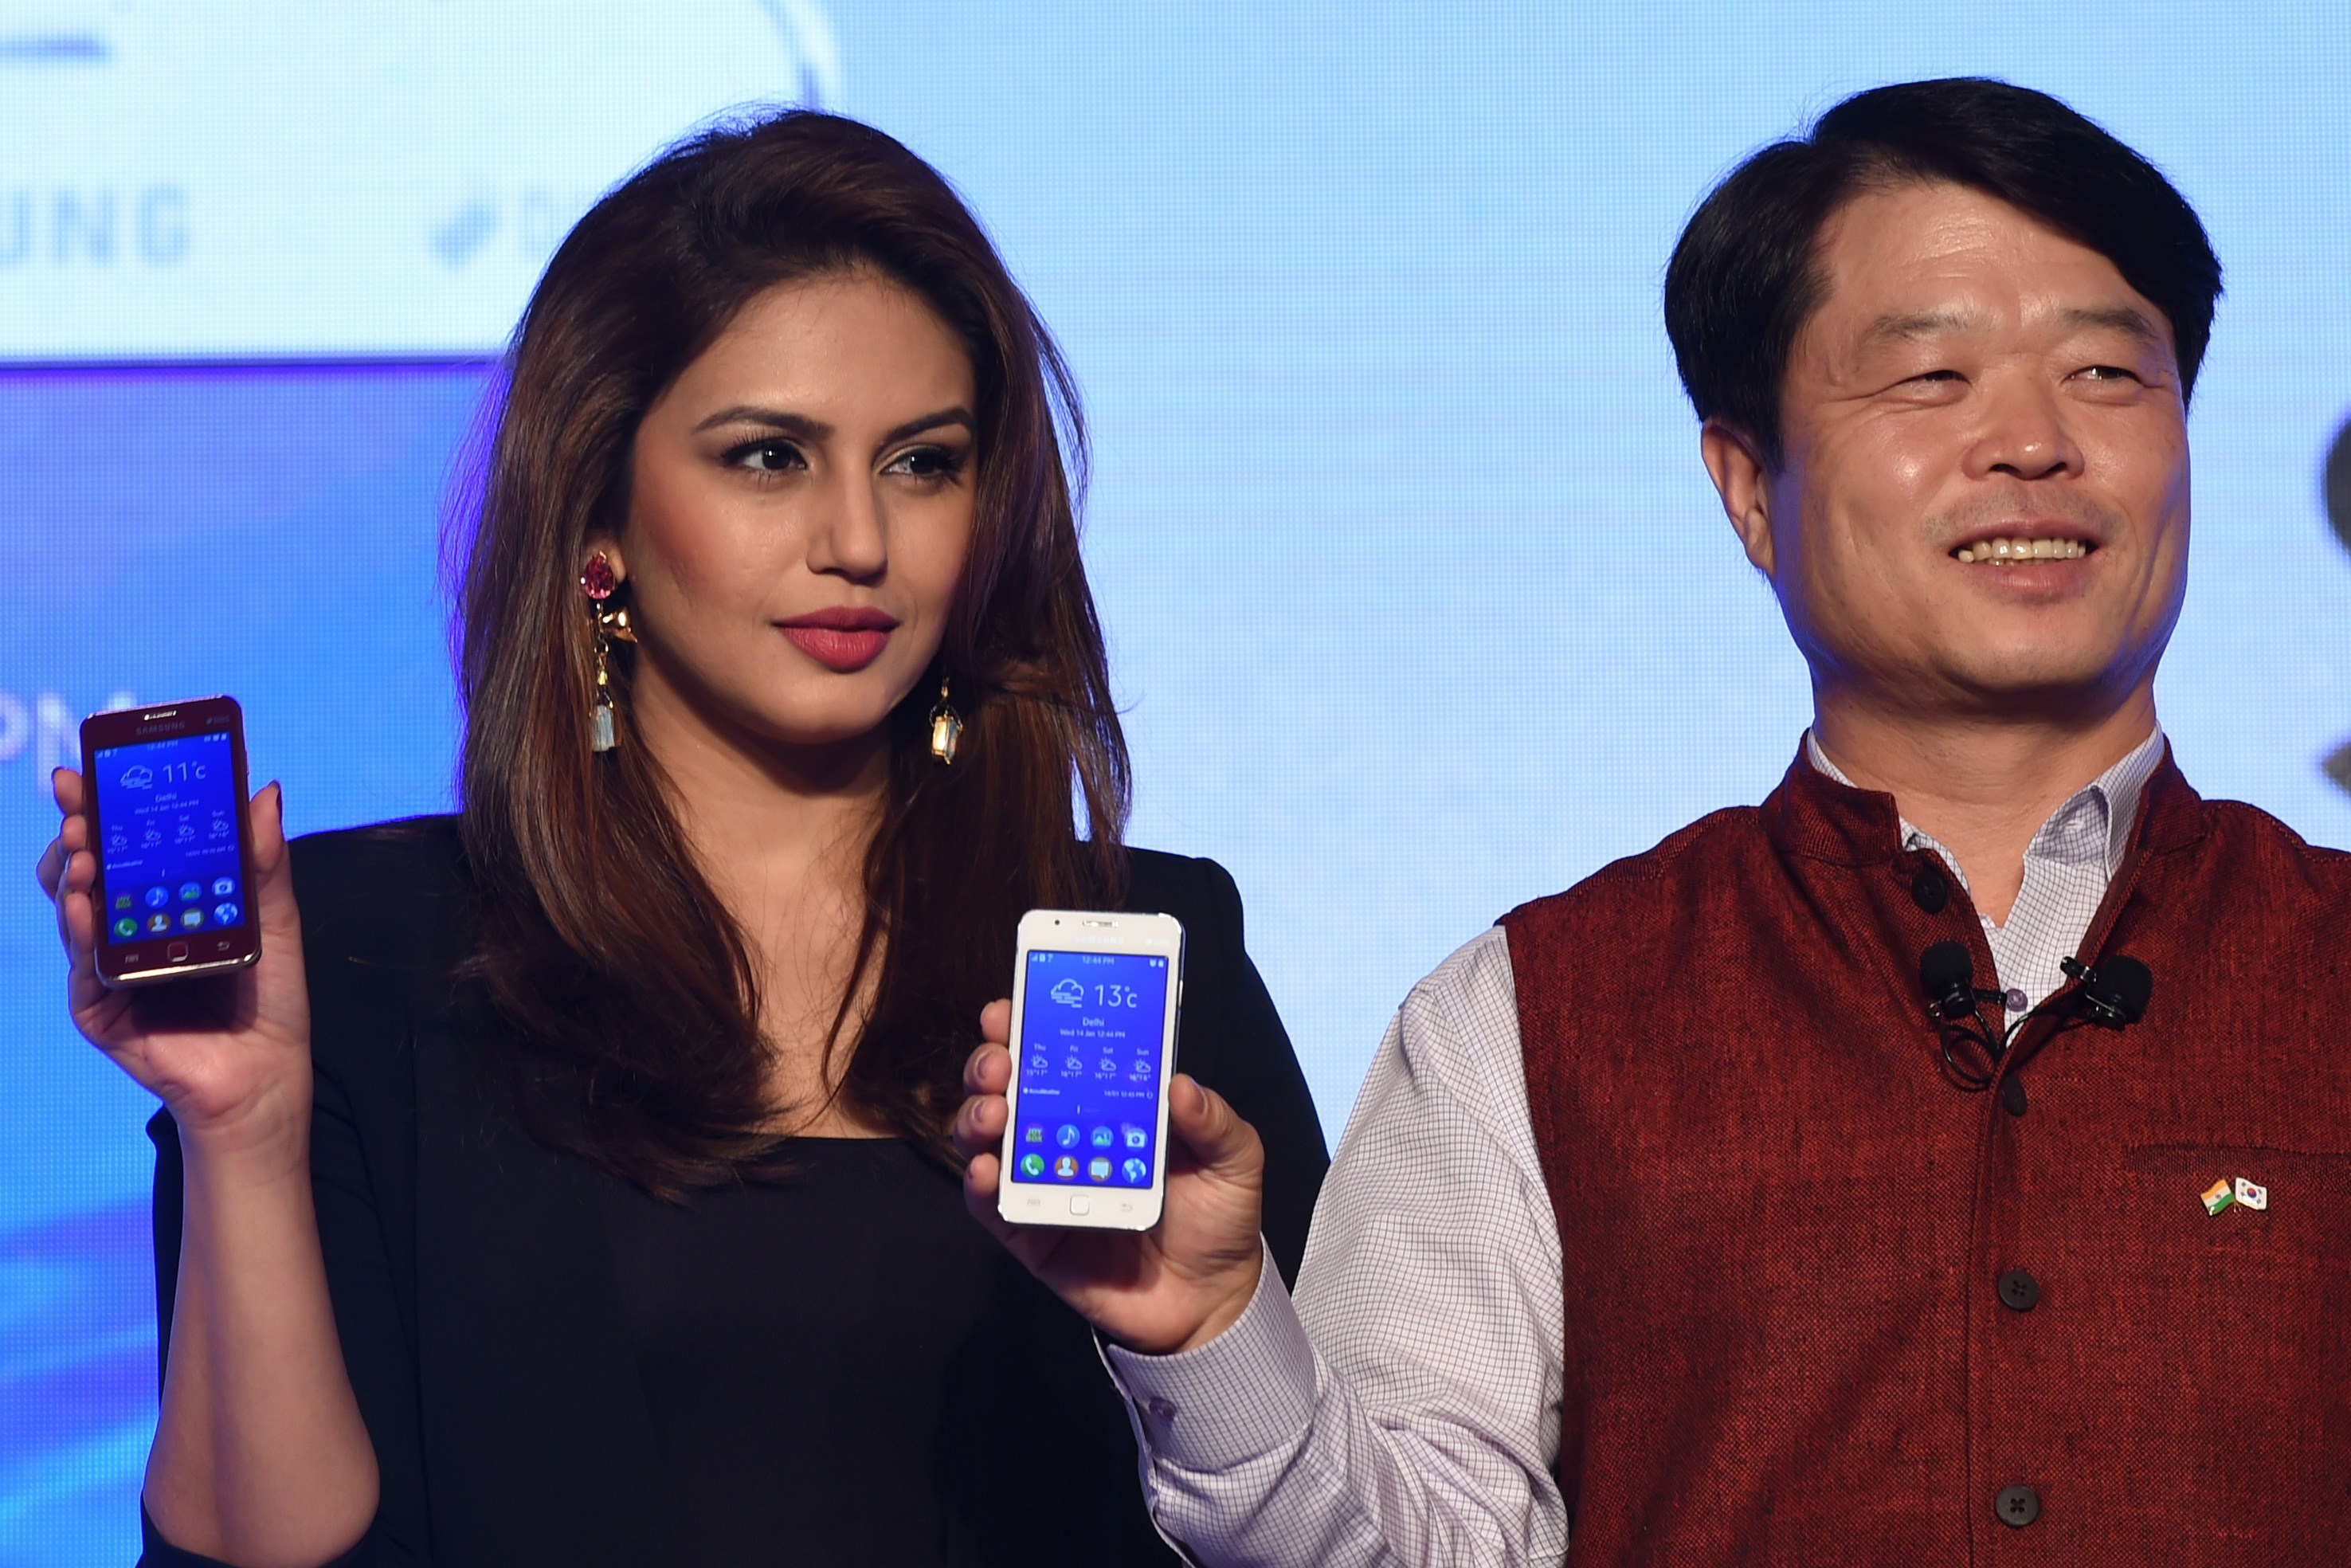 Indian Bollywood actress Huma Qureshi poses with Hyun Chil Hong, president and CEO of Samsung India, during the launch of the Samsung Z1 smartphone at a function in New Delhi on Jan. 14, 2015.